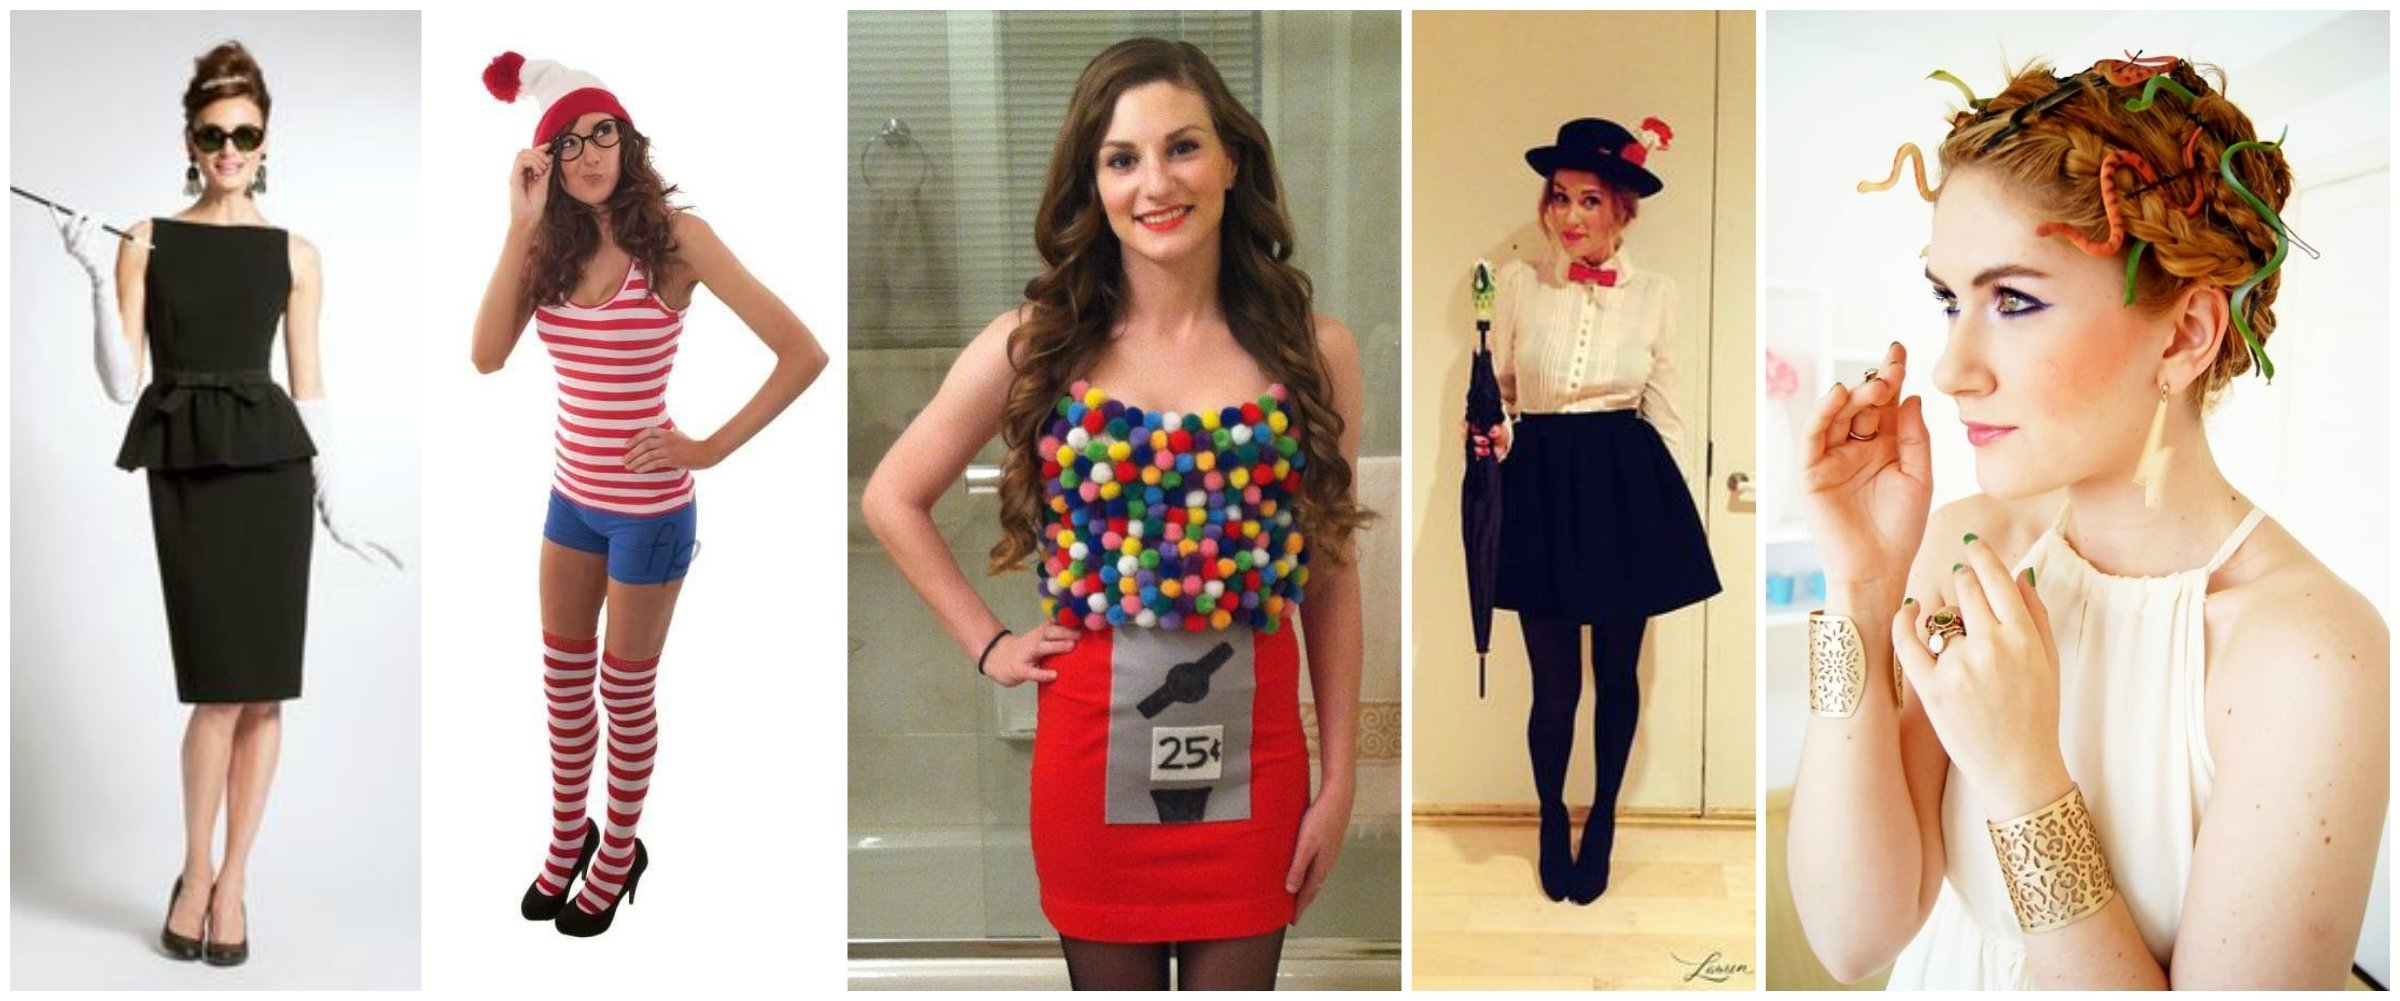 10 perfect diy costume ideas for women diy halloween costume ideas diyfyi costume ideas for samorzady